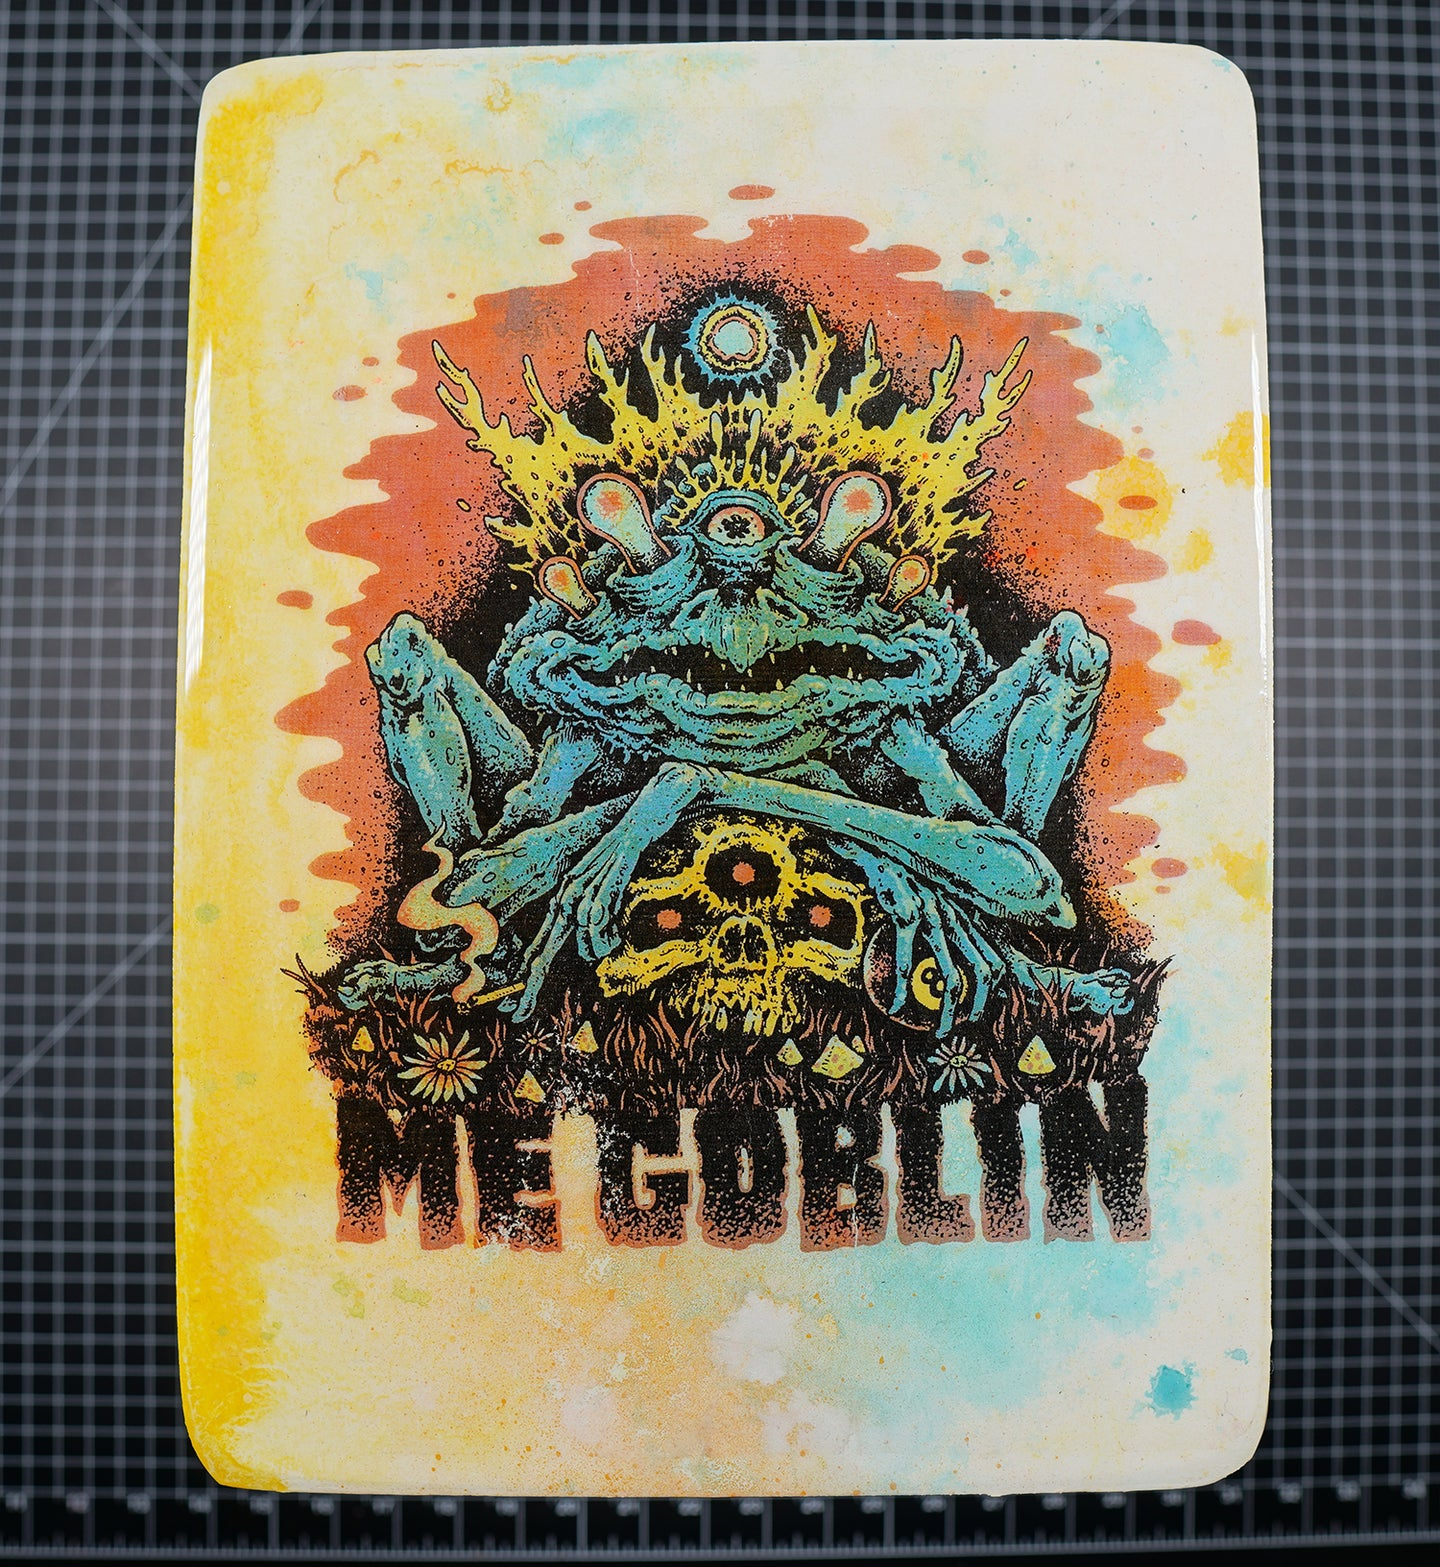 Me Goblin - Wood Transfer